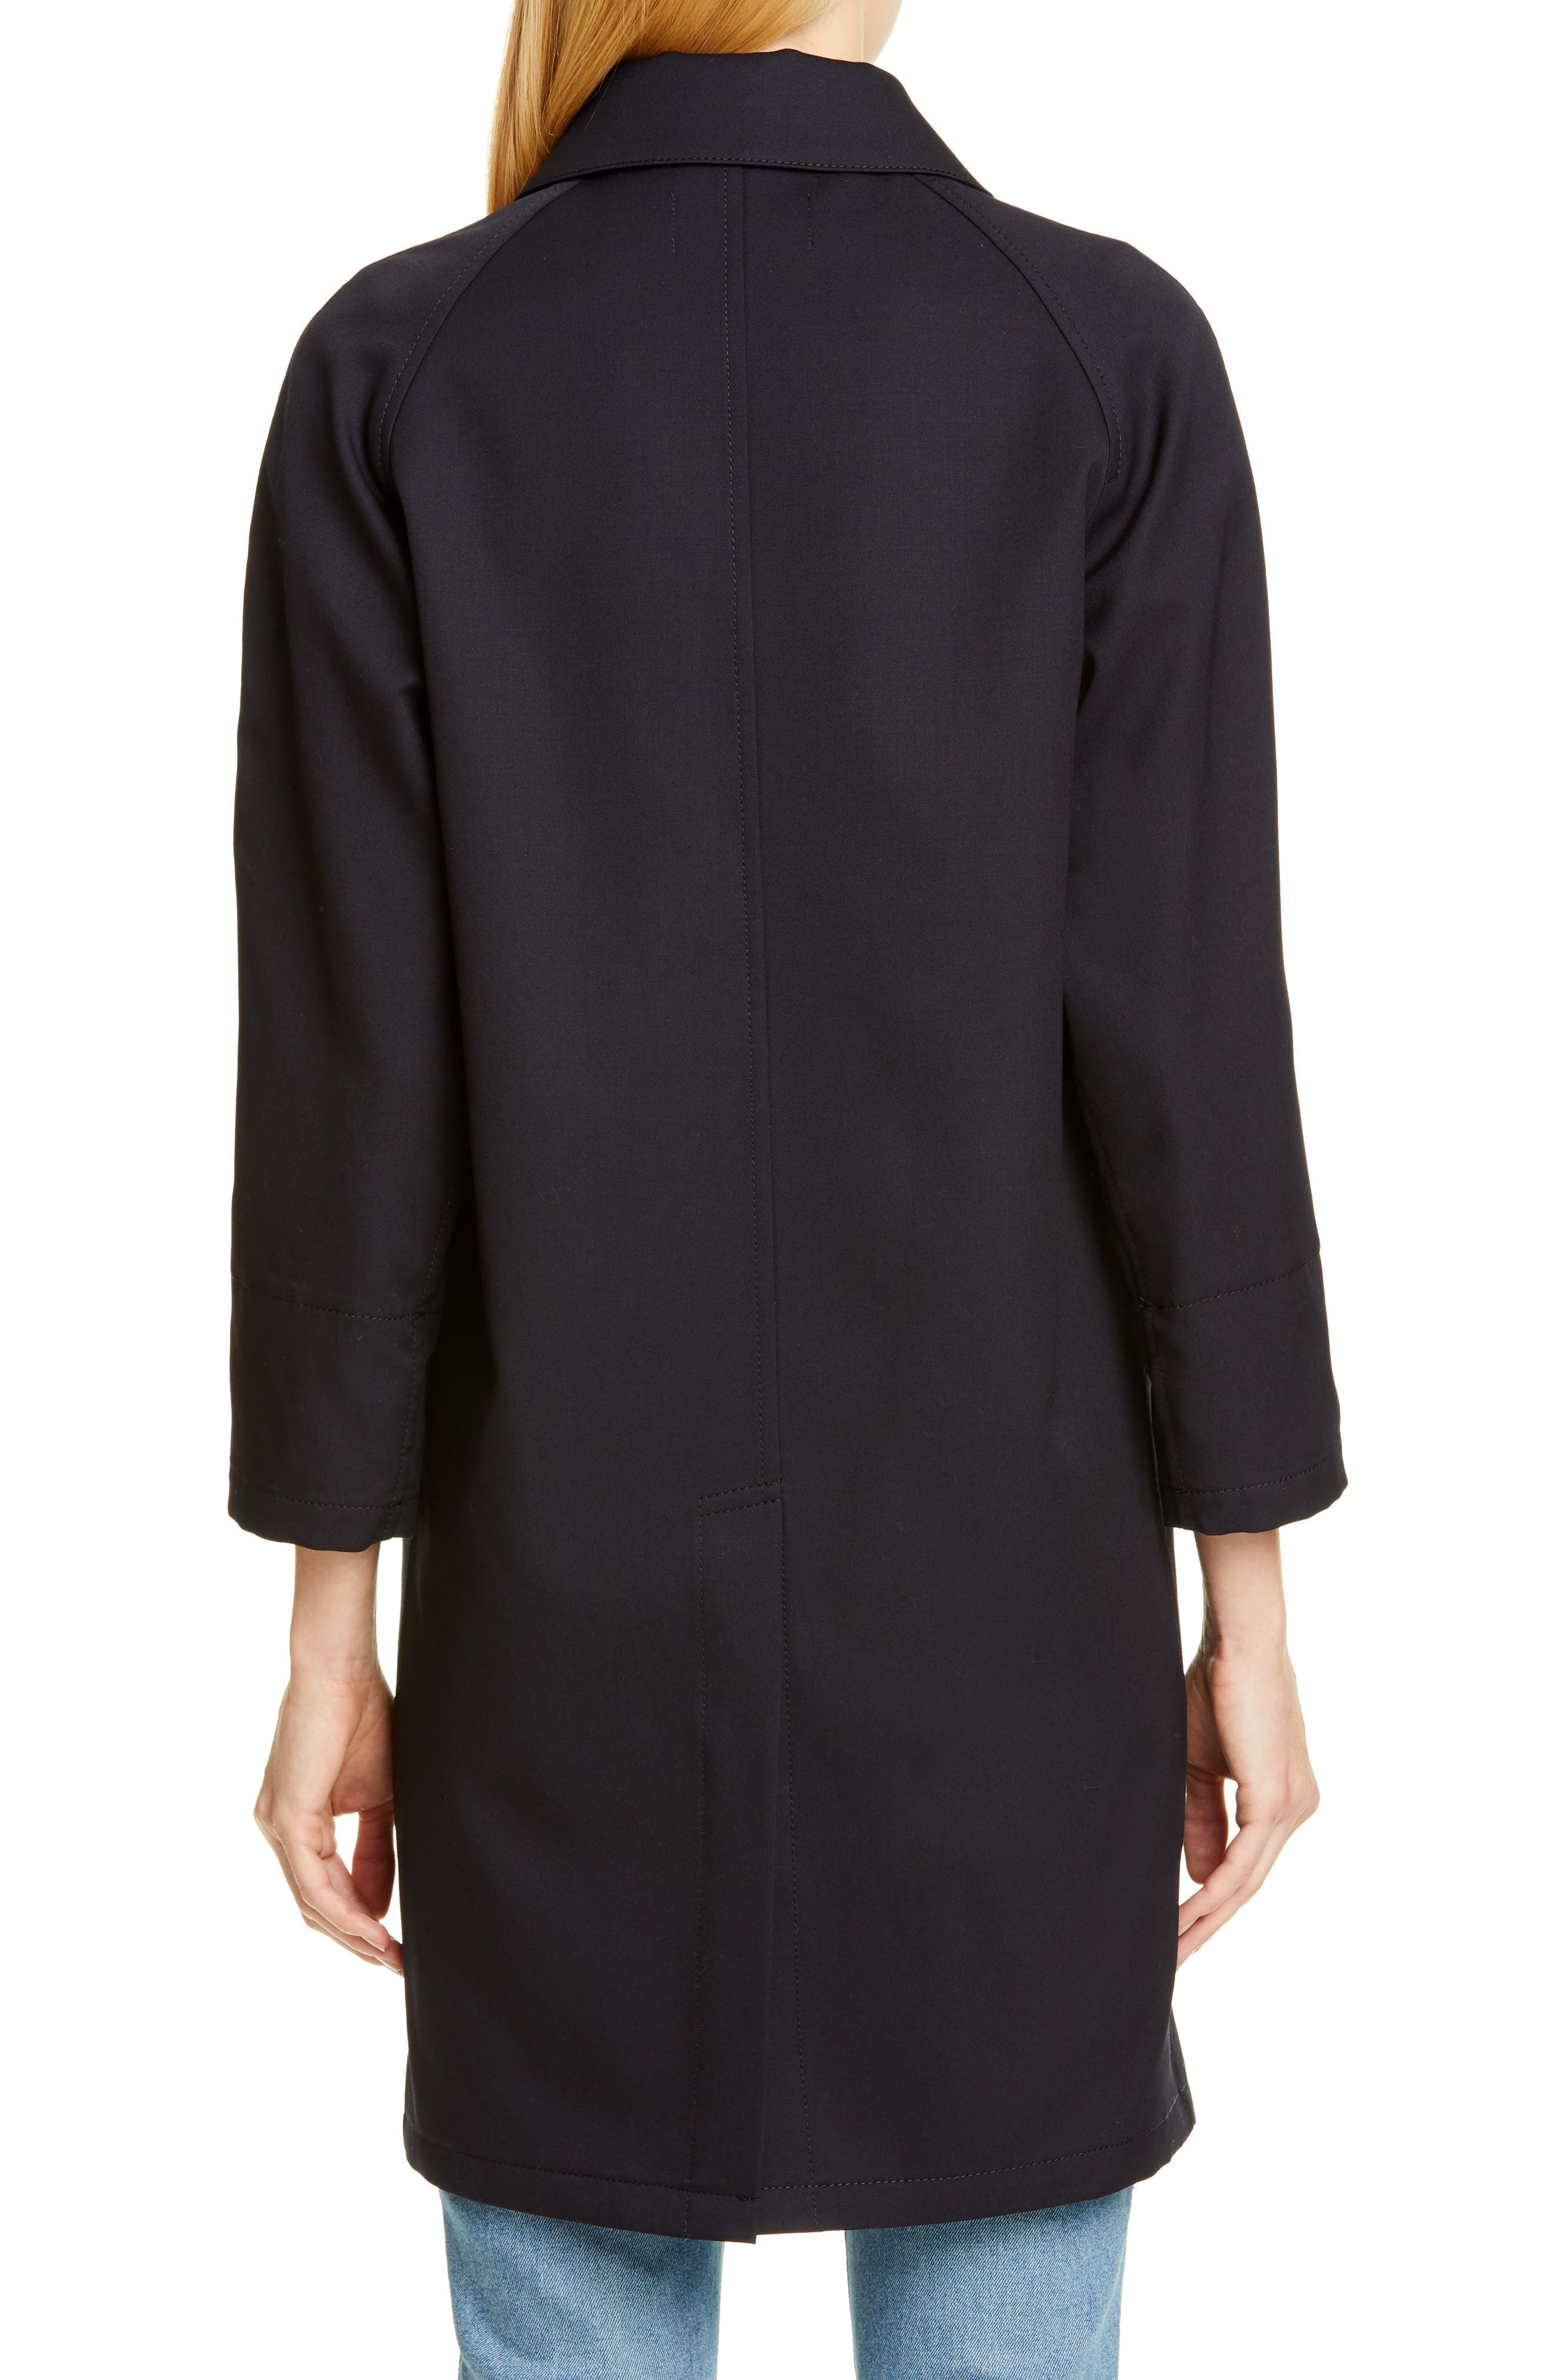 TRICOT COMME DES GARÇONS, Wool Cab Coat with Print Lining, Alternate thumbnail 2, color, NAVY